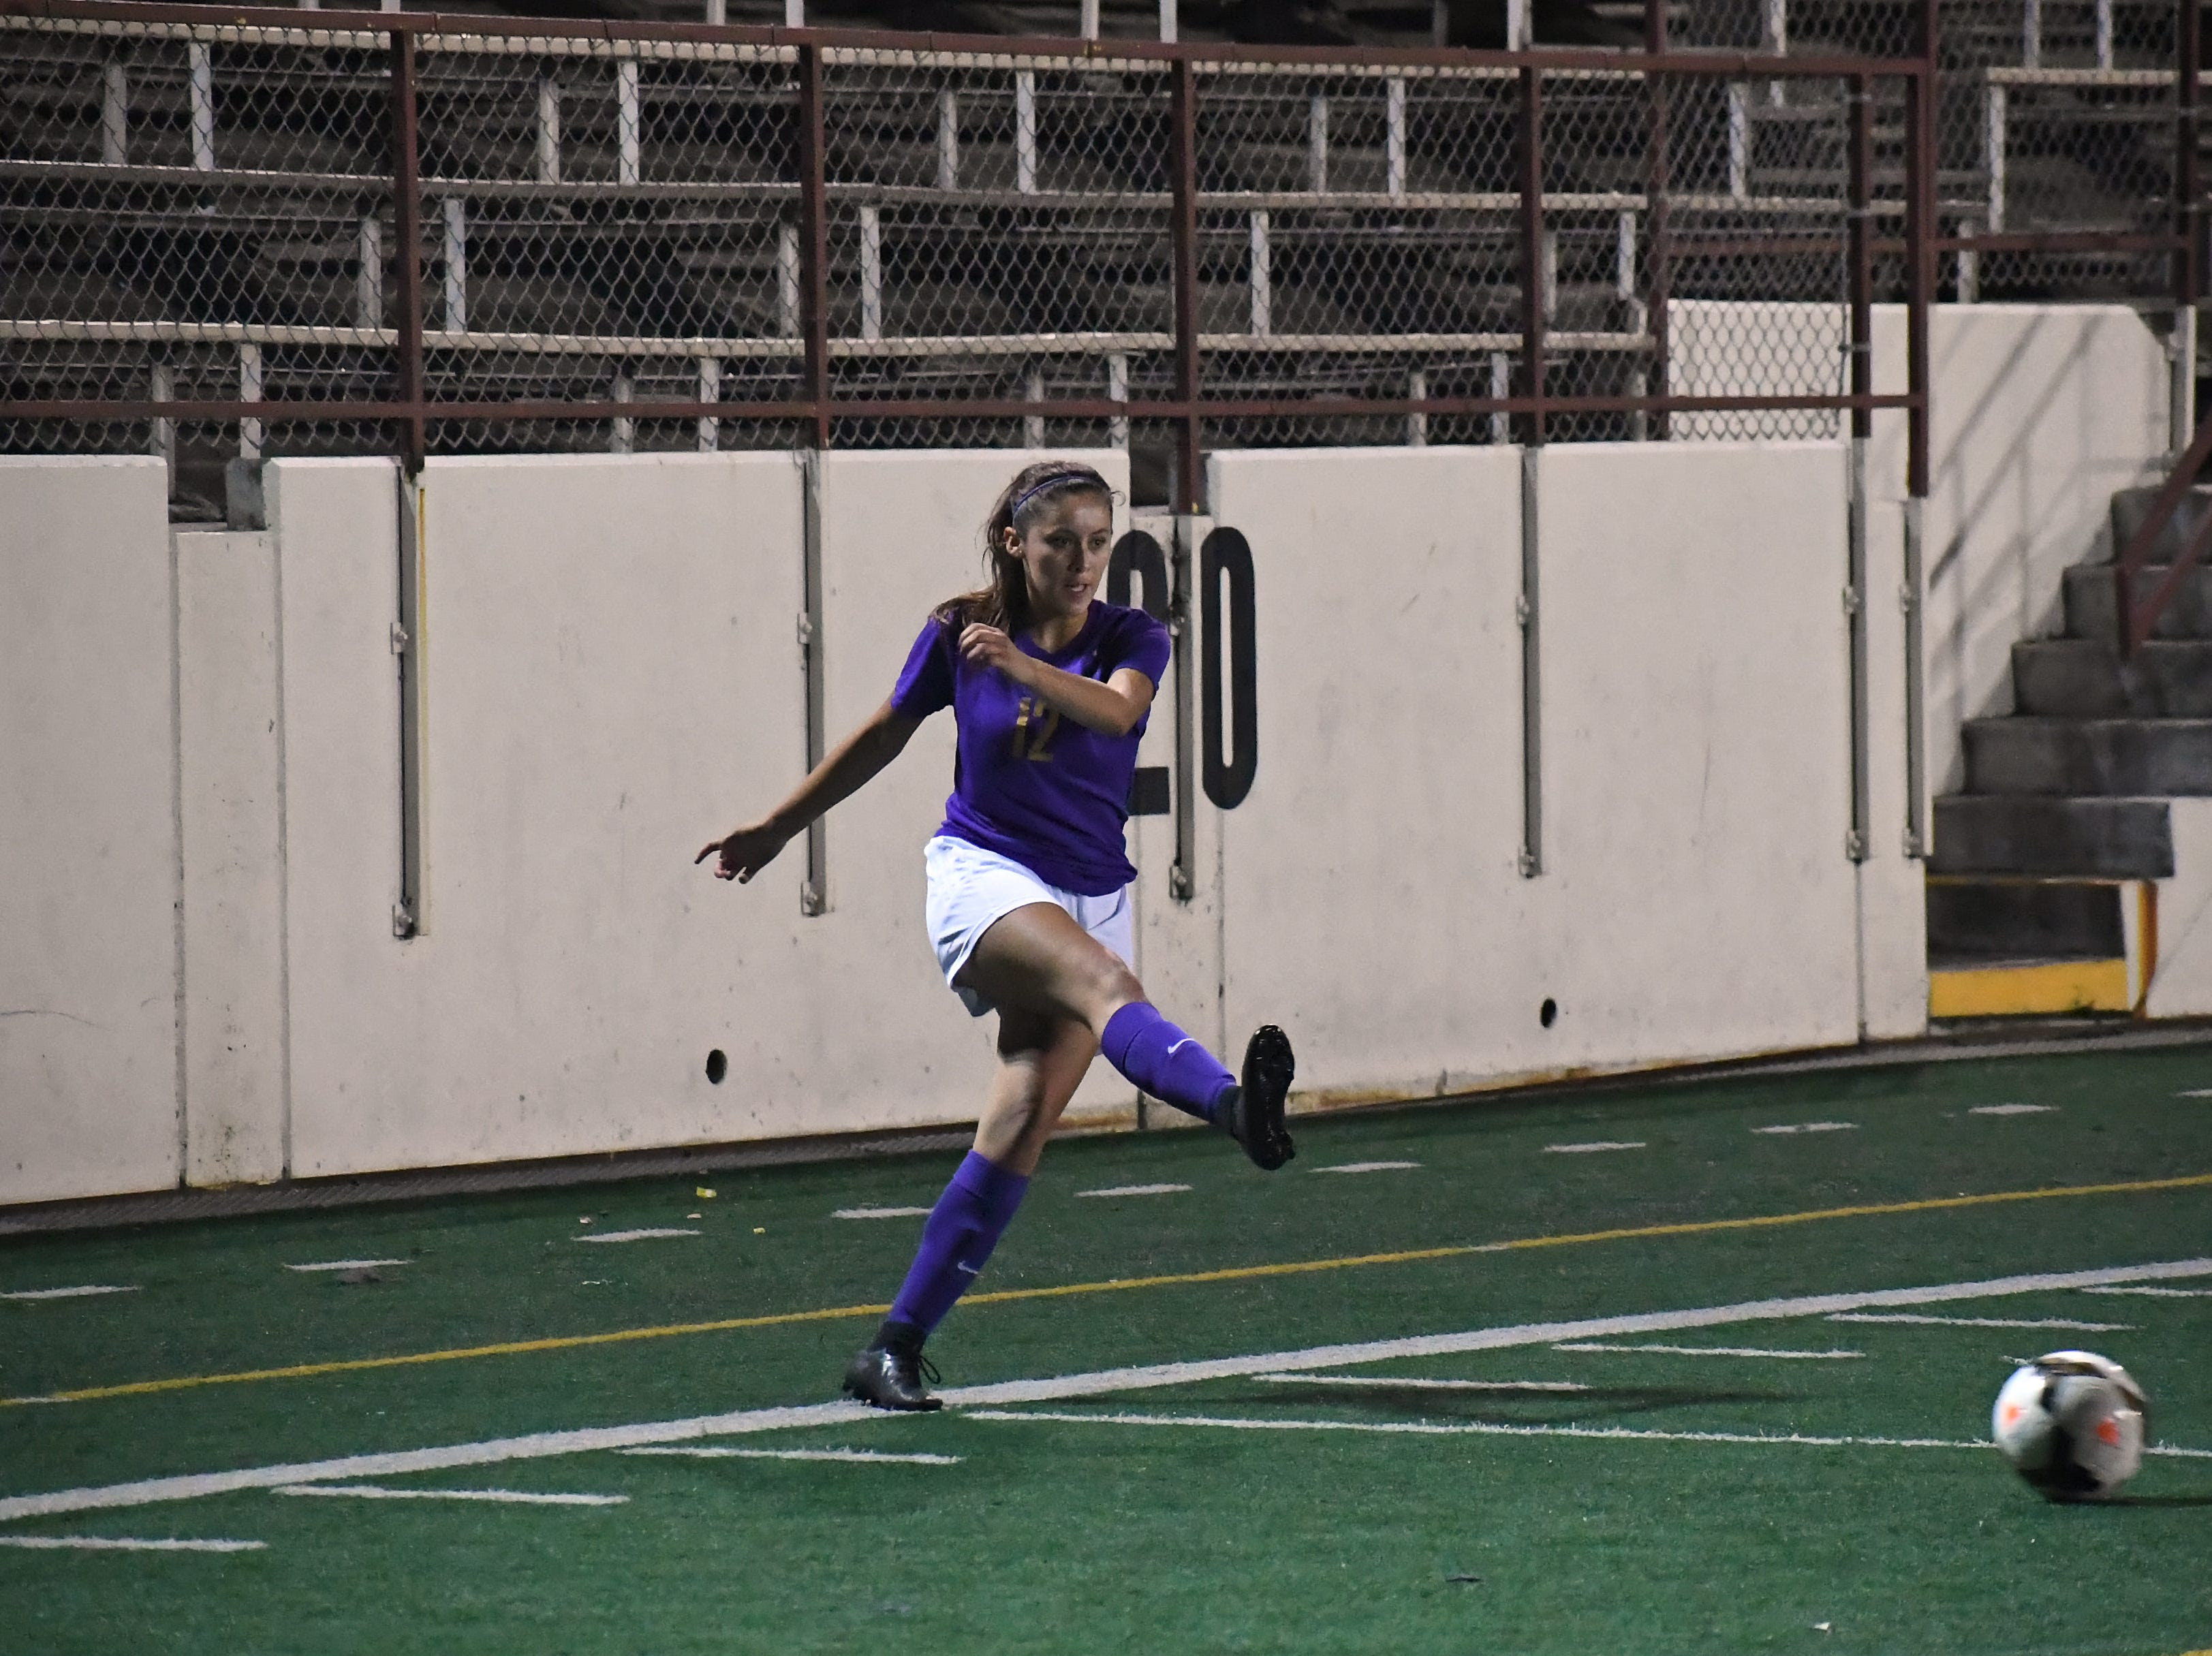 Junior Victoria Pelagio (12) fires a pass toward the center of the field.